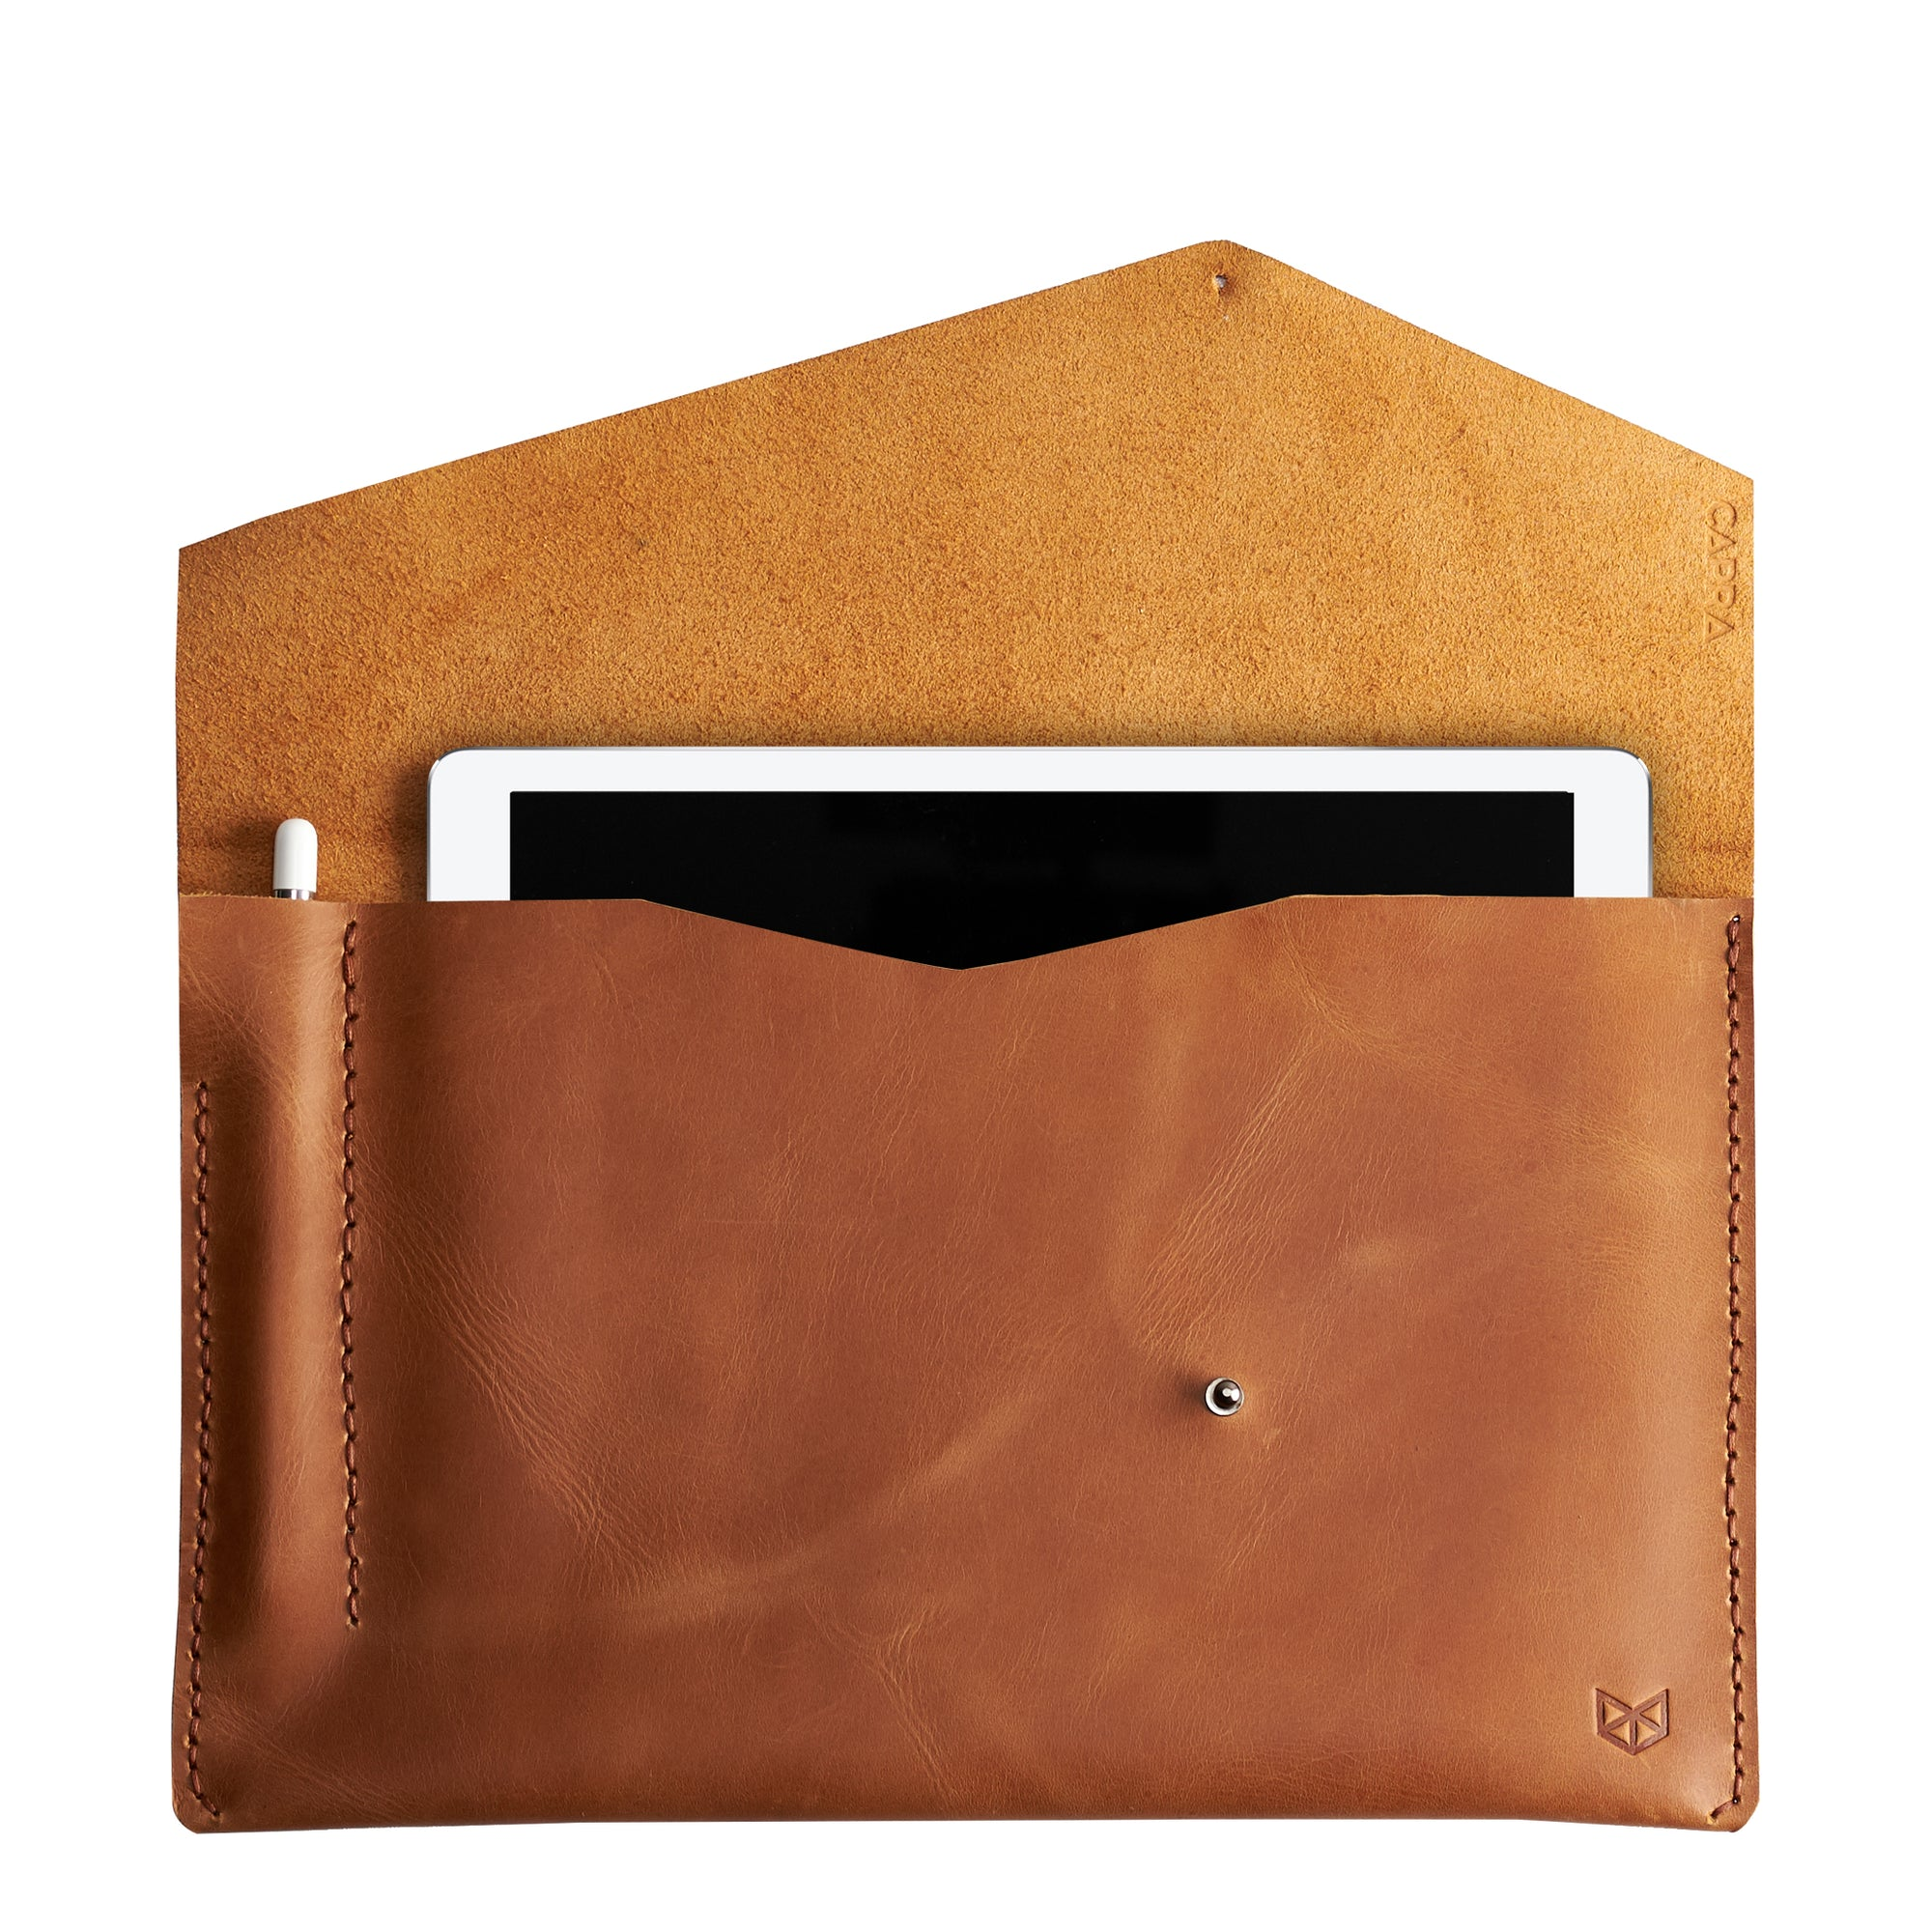 Light brown leather sleeve for iPad pro. Case for iPad Pro 10.5 inch 12.9 inch. Mens gifts